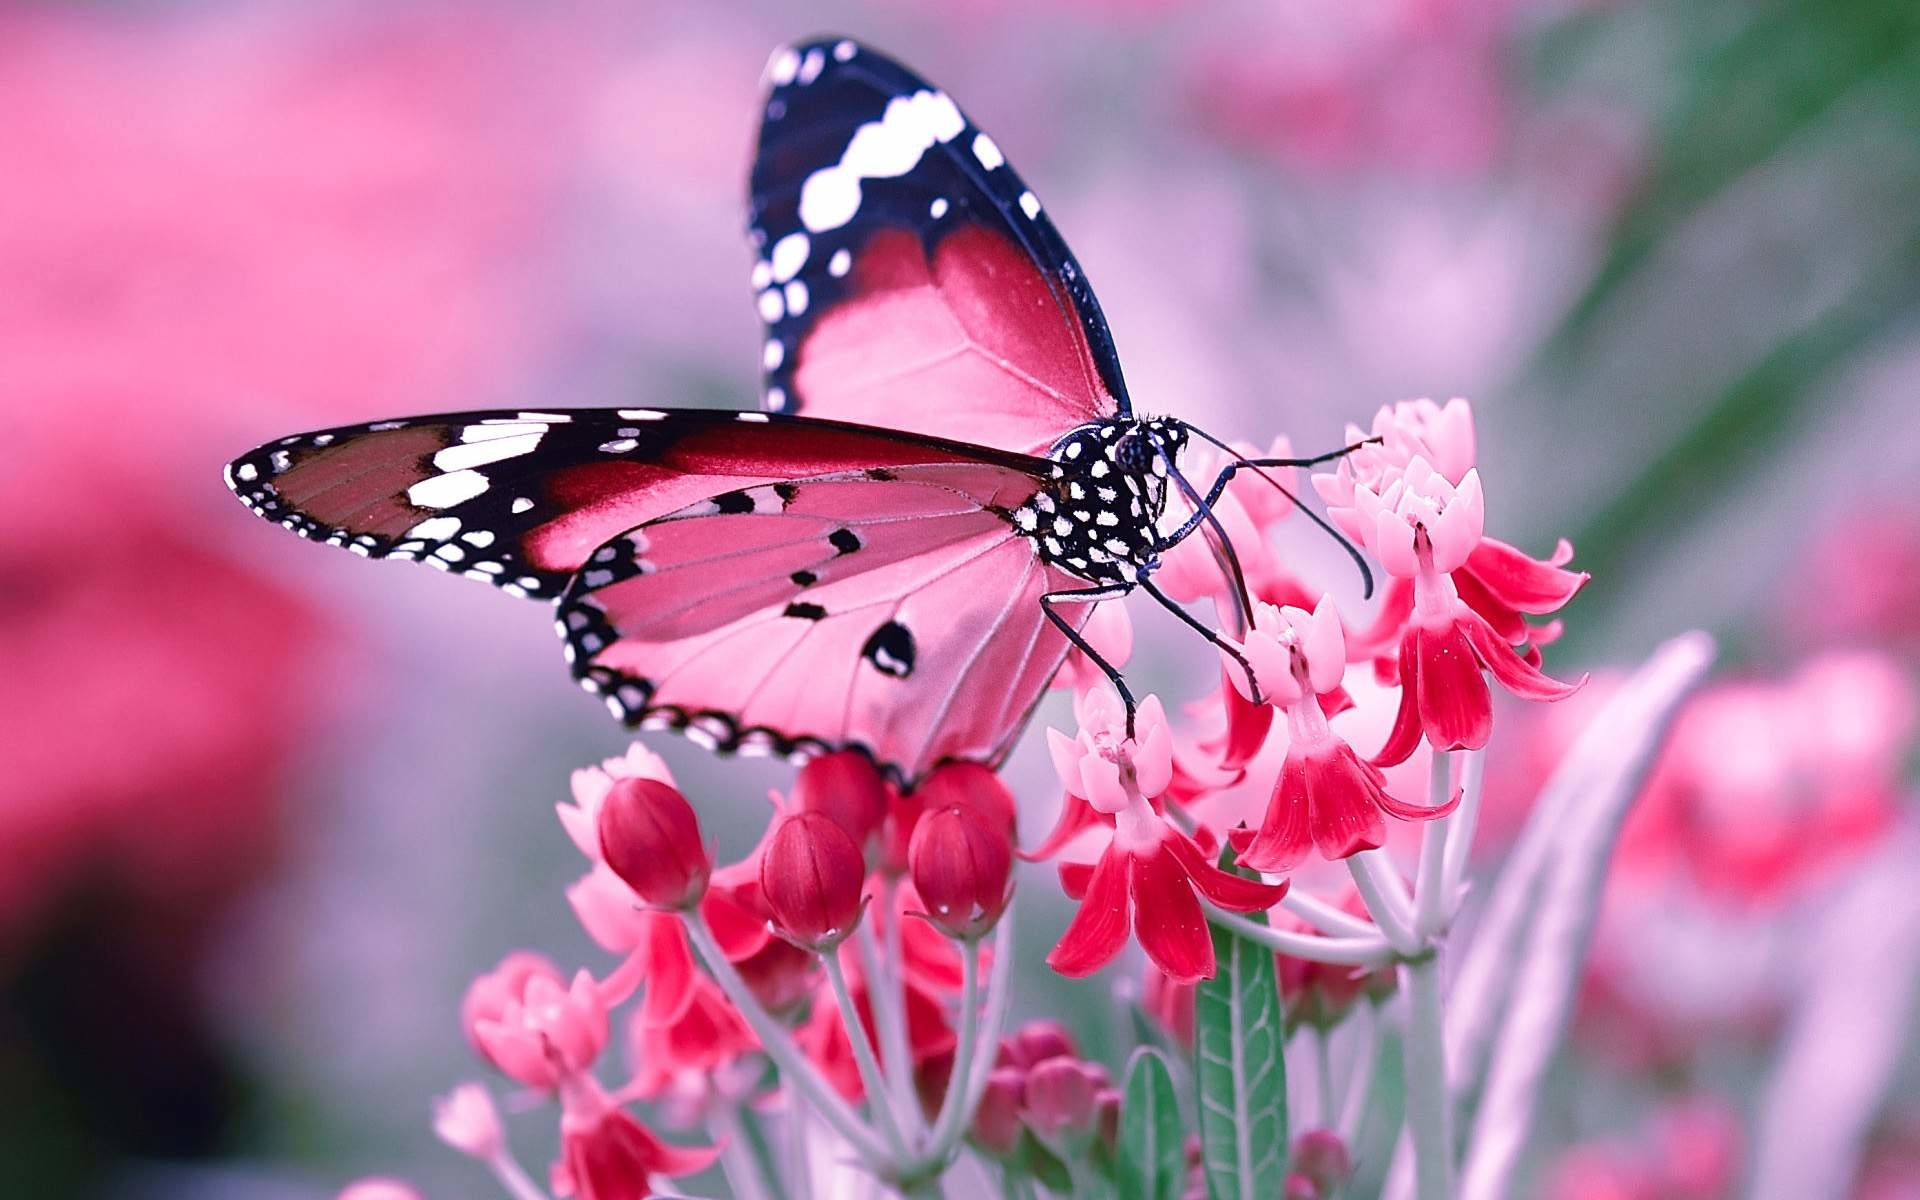 Res: 1920x1200, Butterfly Wallpaper High Quality